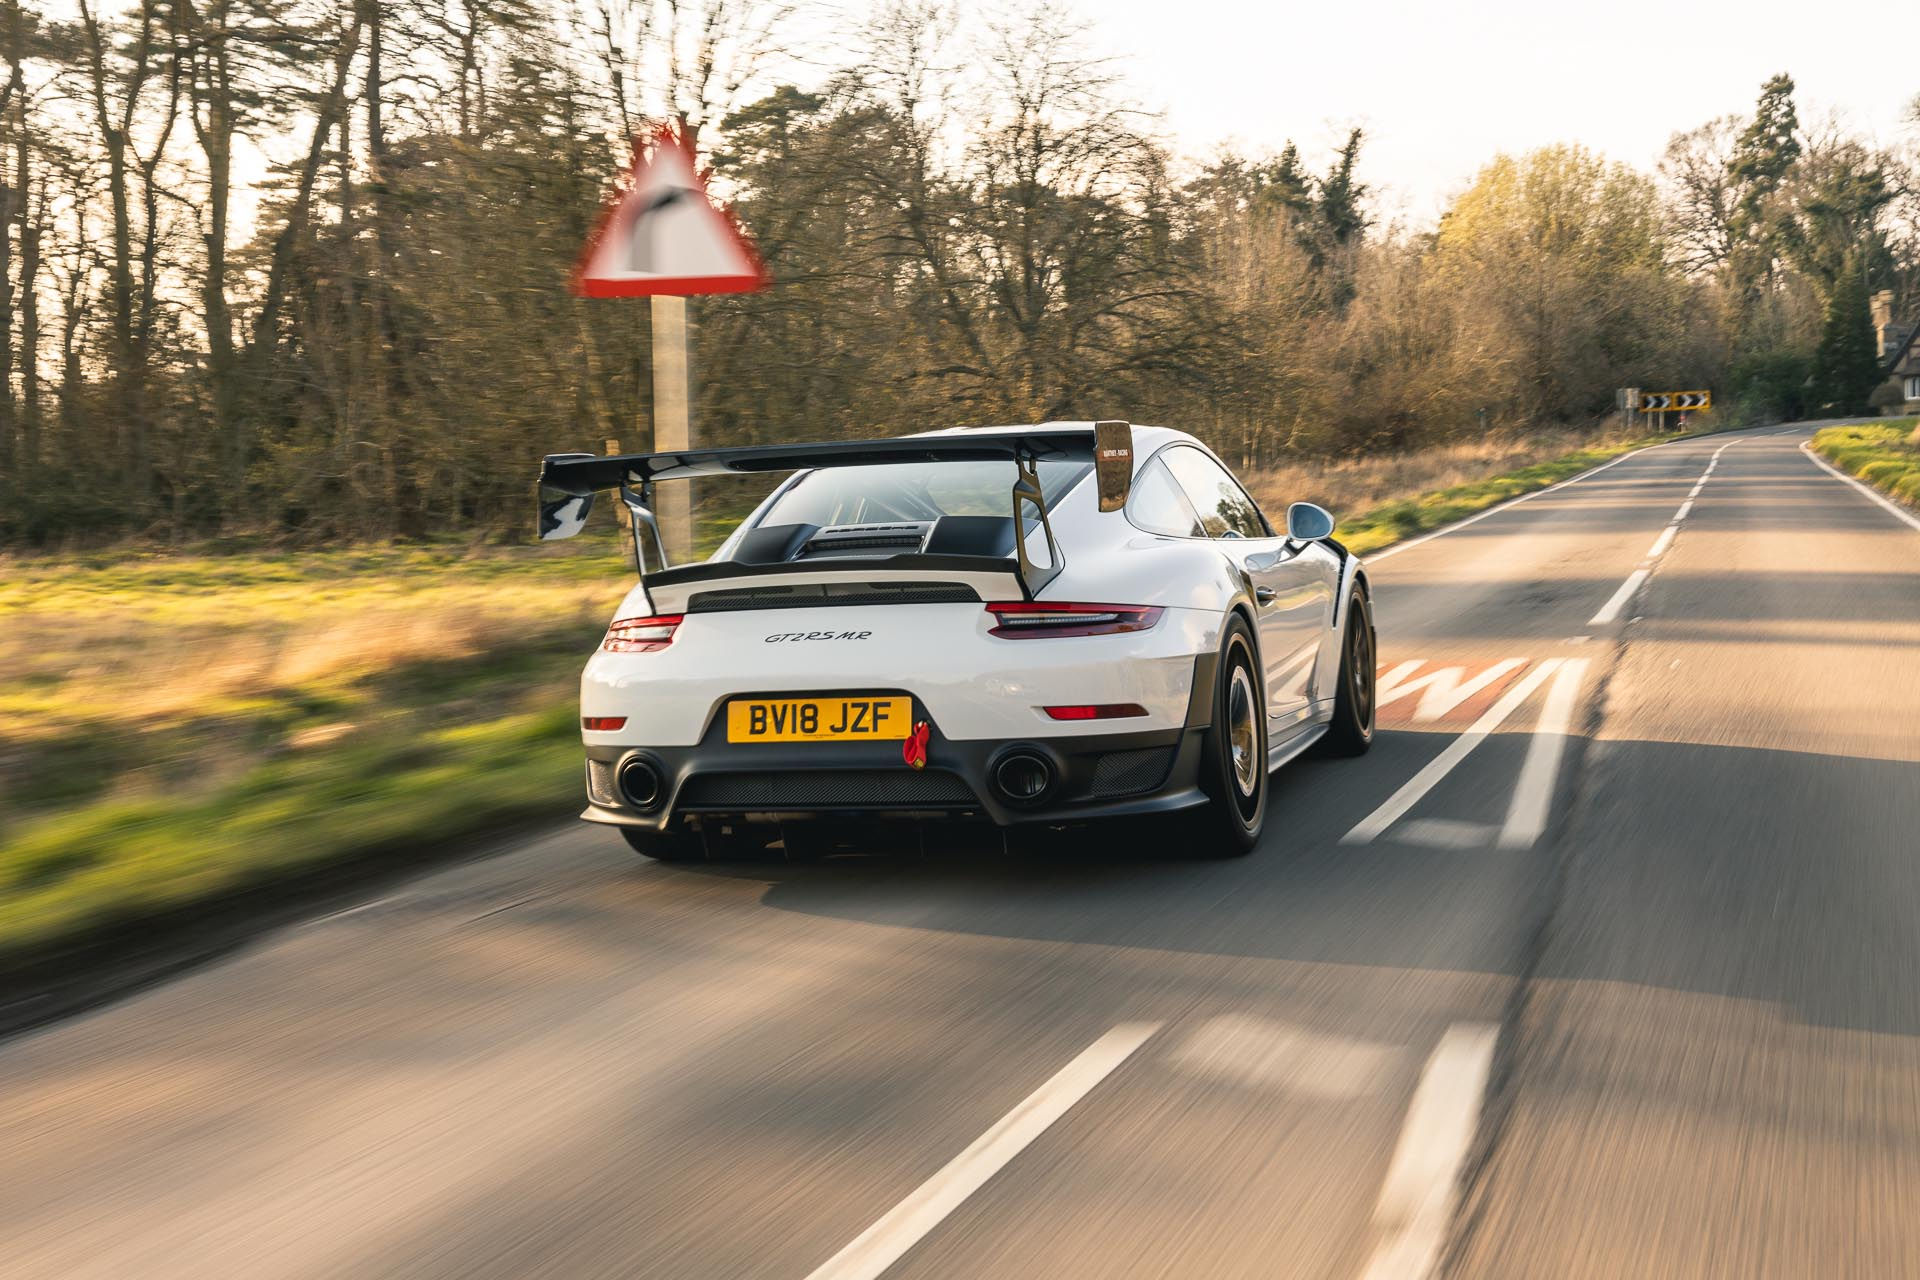 gt2rs-mr-on-road